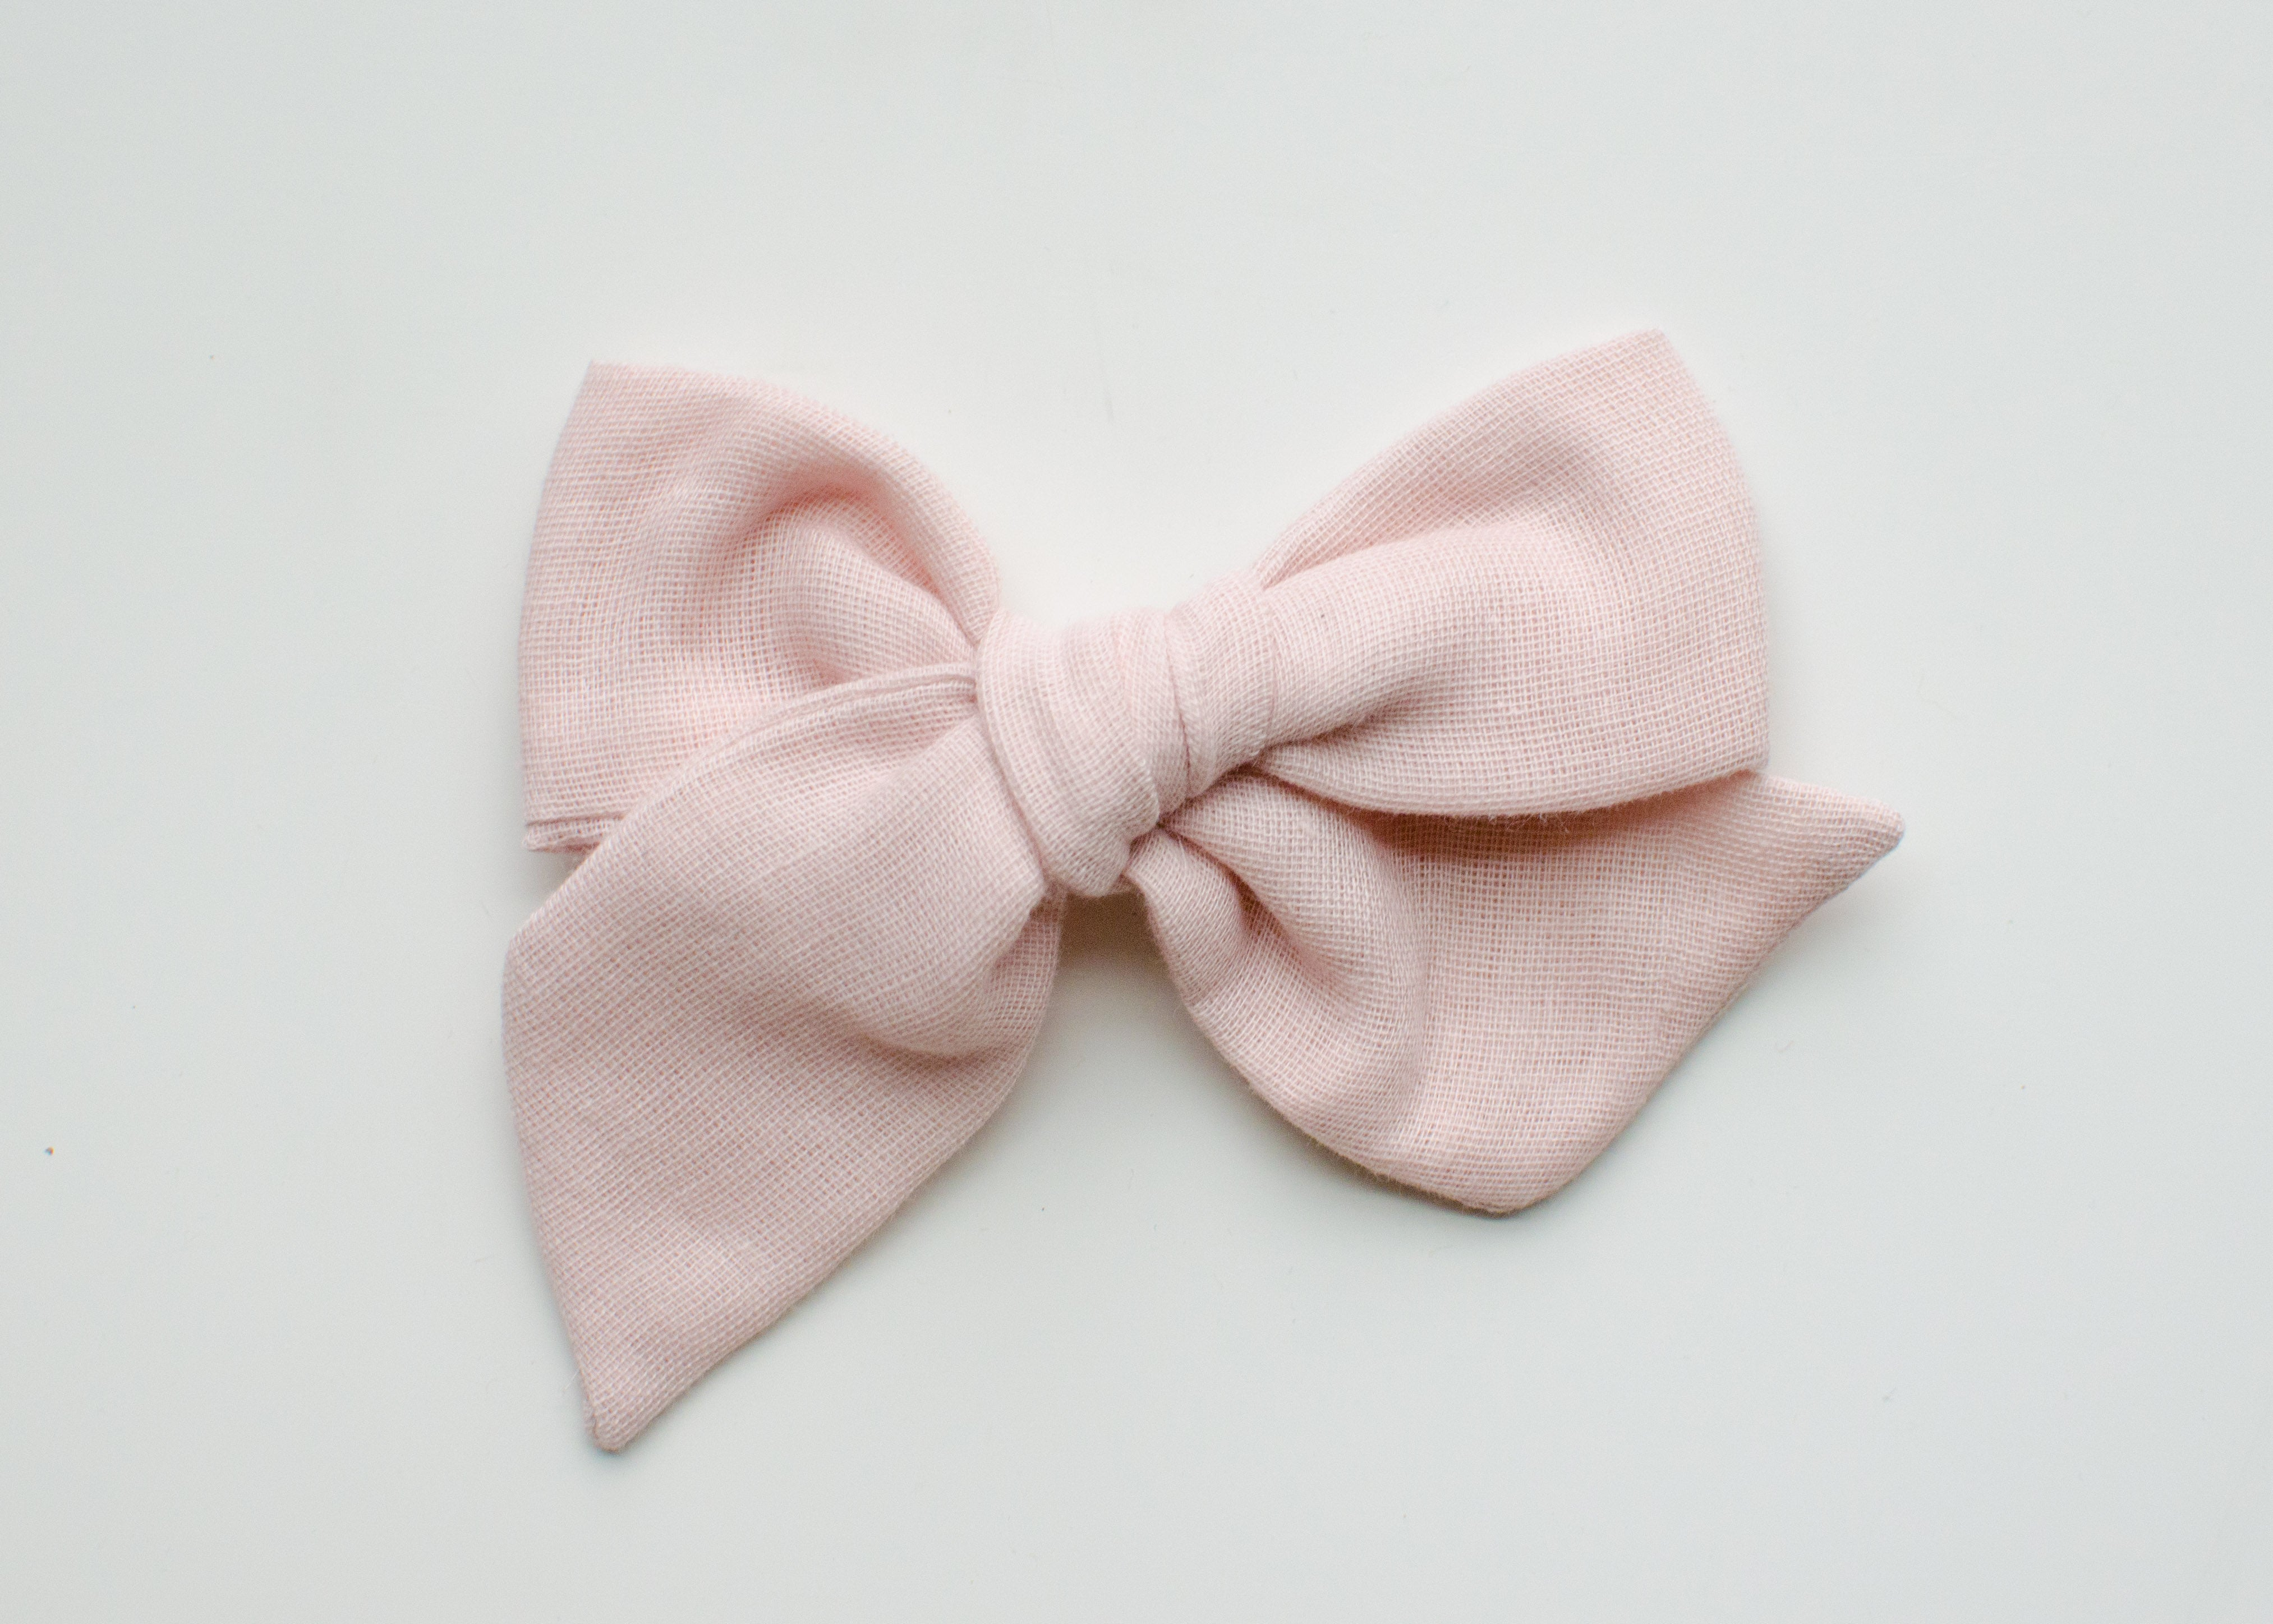 Saloo Gauze Emery Fabric Hair Bow in Blush